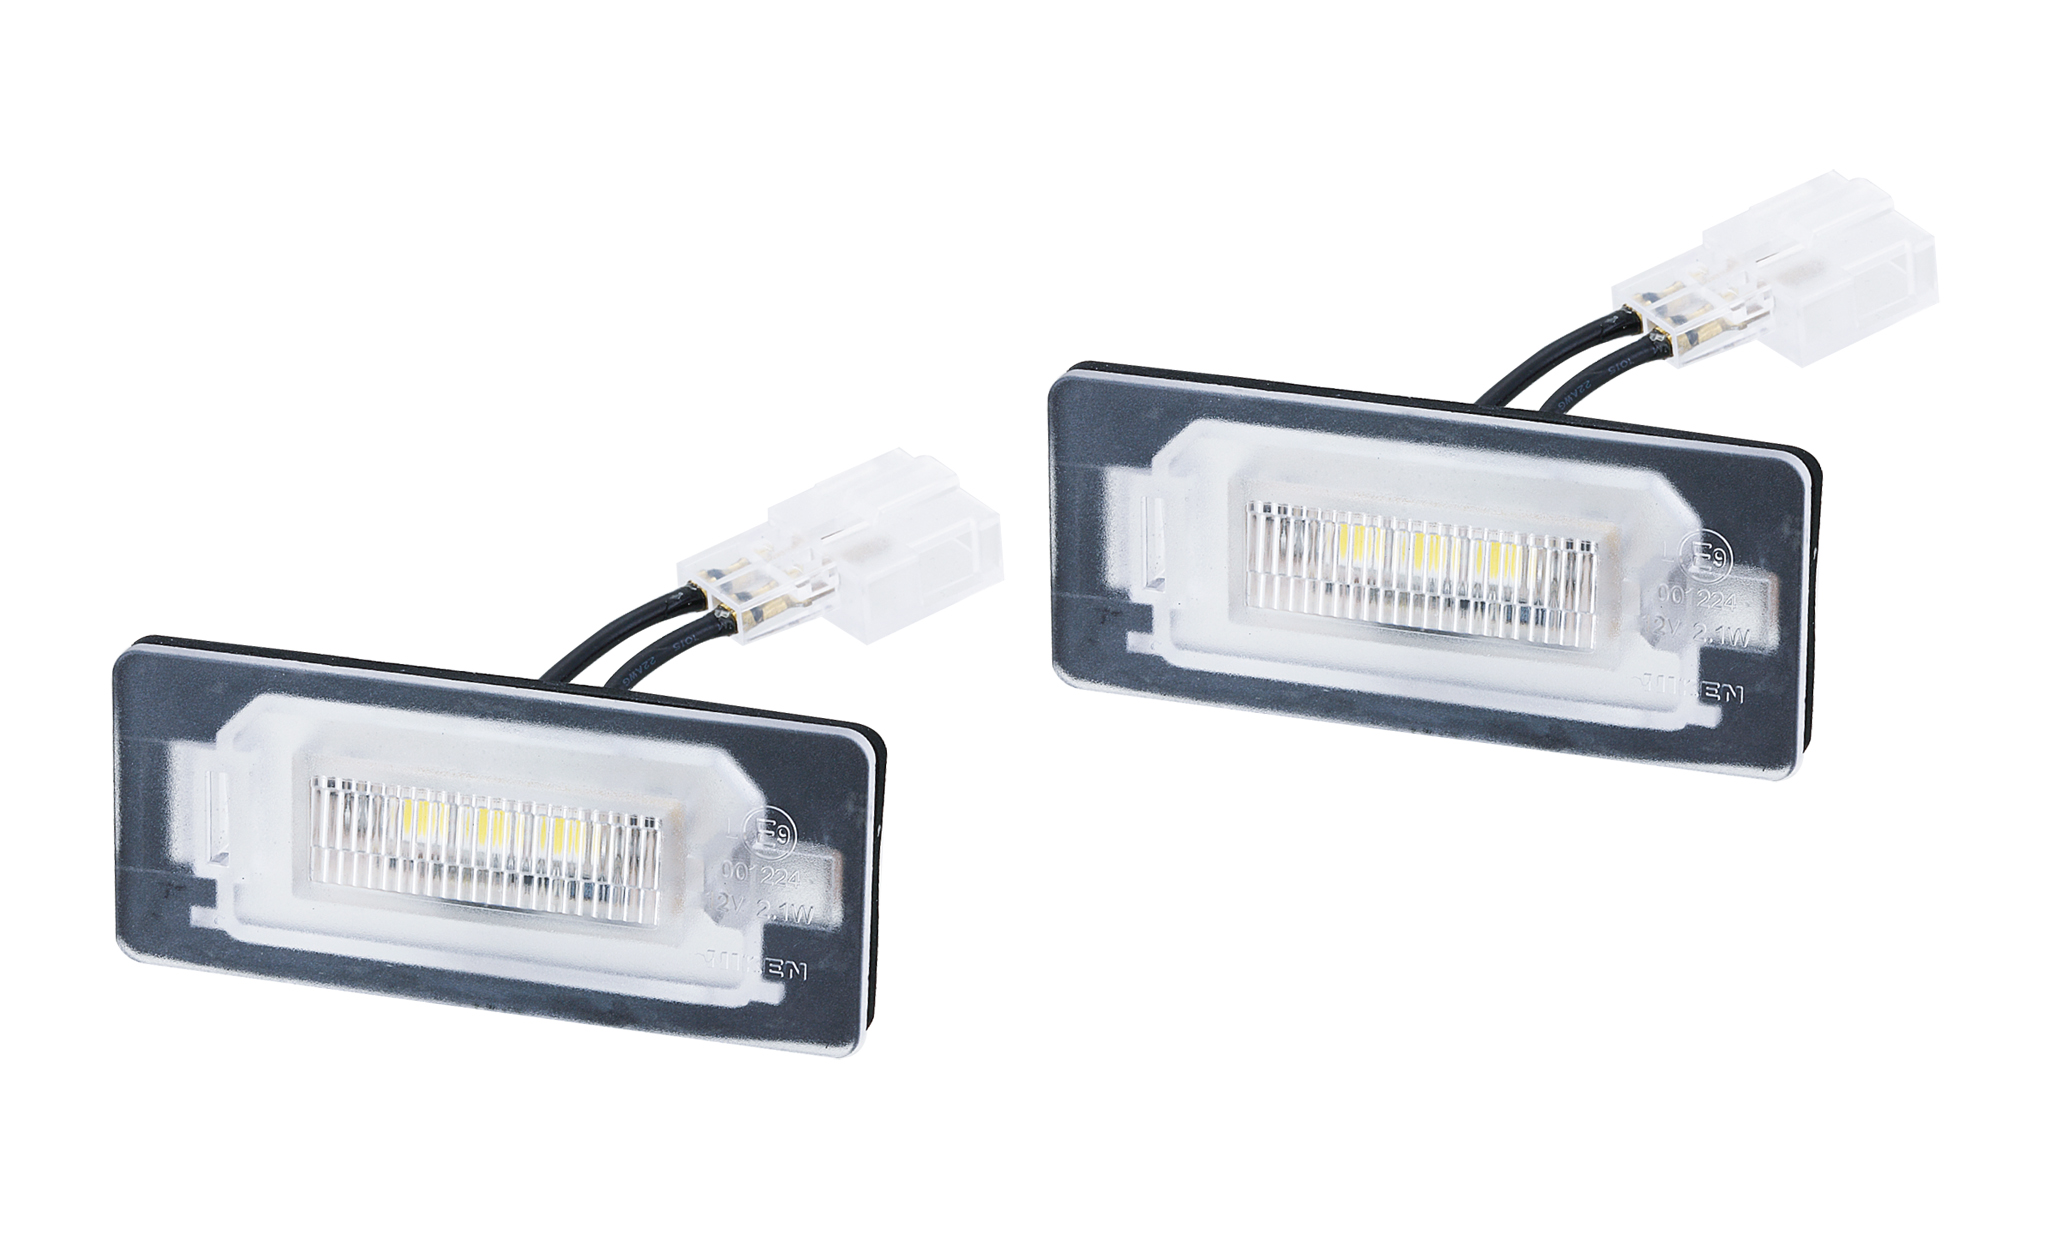 Bus LED License Lamp for Lighting Series made by NIKEN Vehicle Lighting Co., LTD. 首通股份有限公司 - MatchSupplier.com